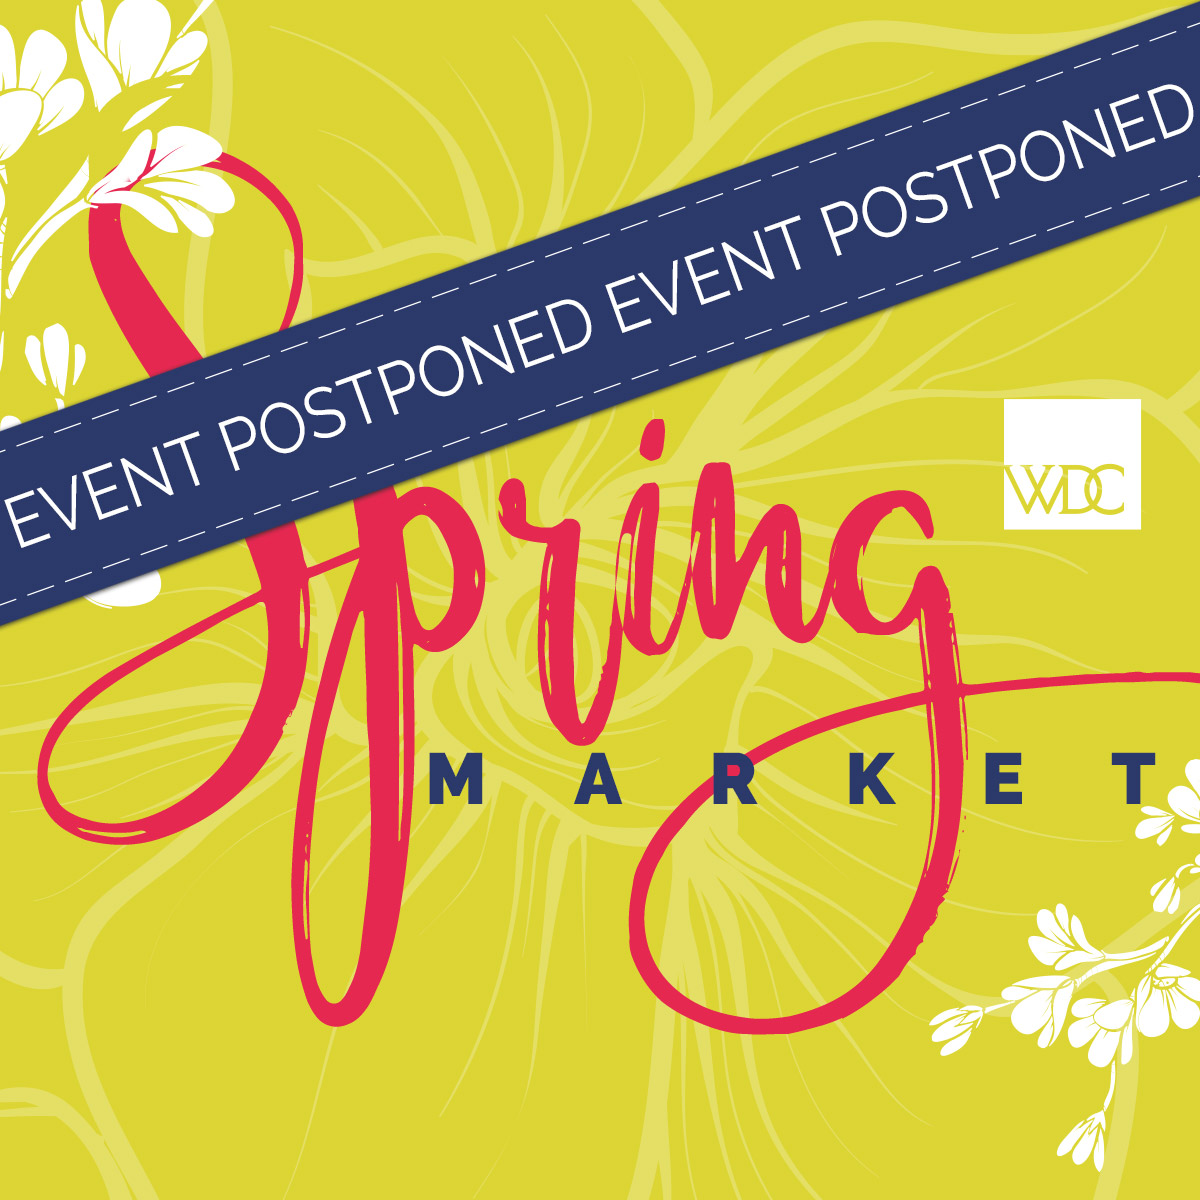 Spring Market 2020 at the Washington Design Center Postponed